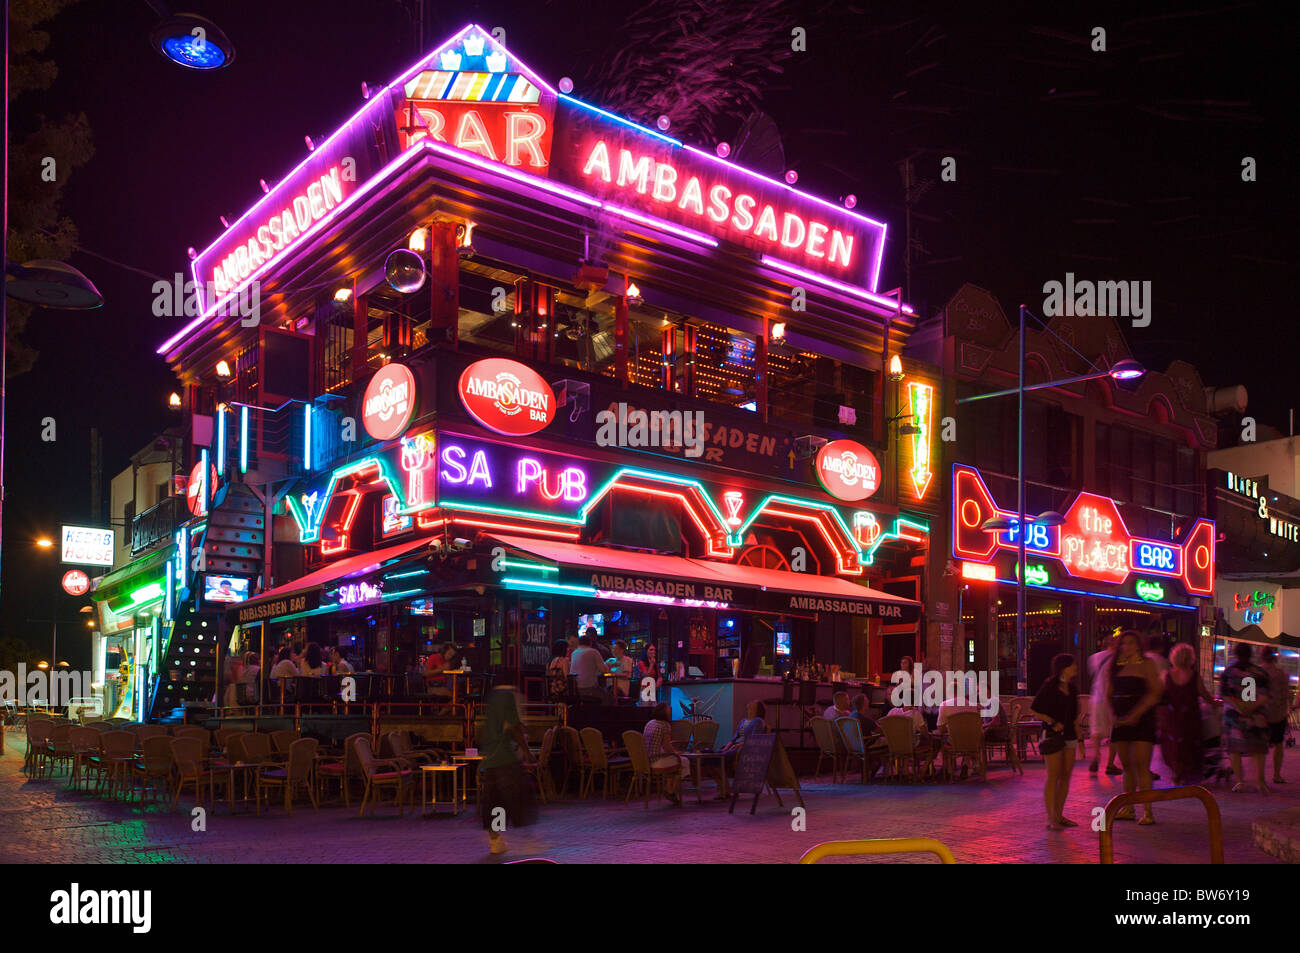 Nightlife, Ayia Napa, Republic of Cyprus - Stock Image